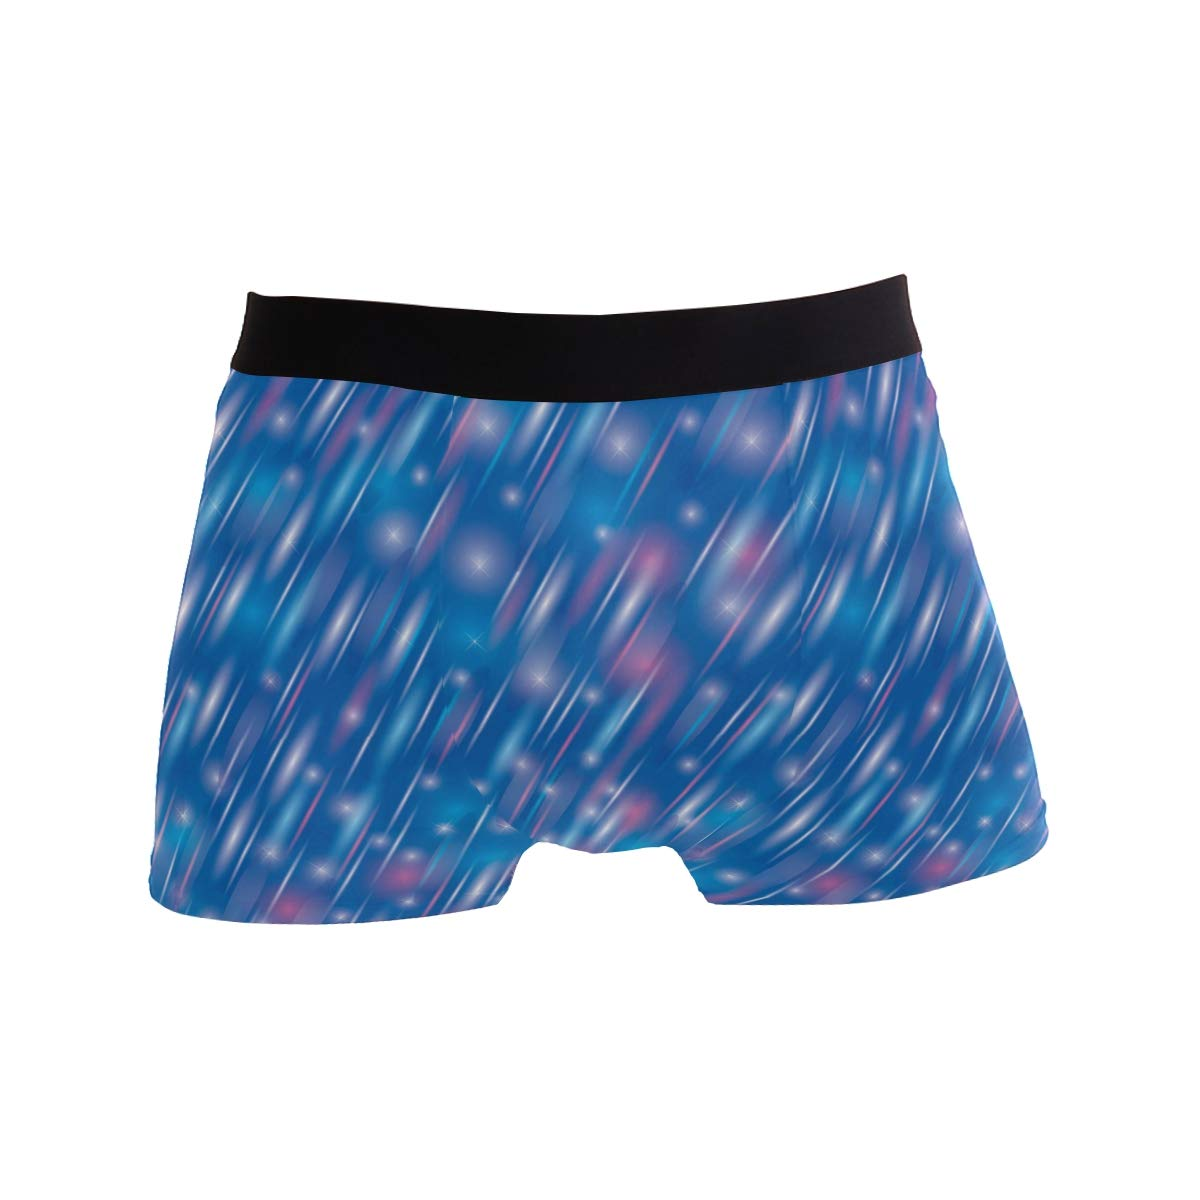 Unreal 3D Starry Meteor Mens Sports Performance Shorts Underwear 2 Pack